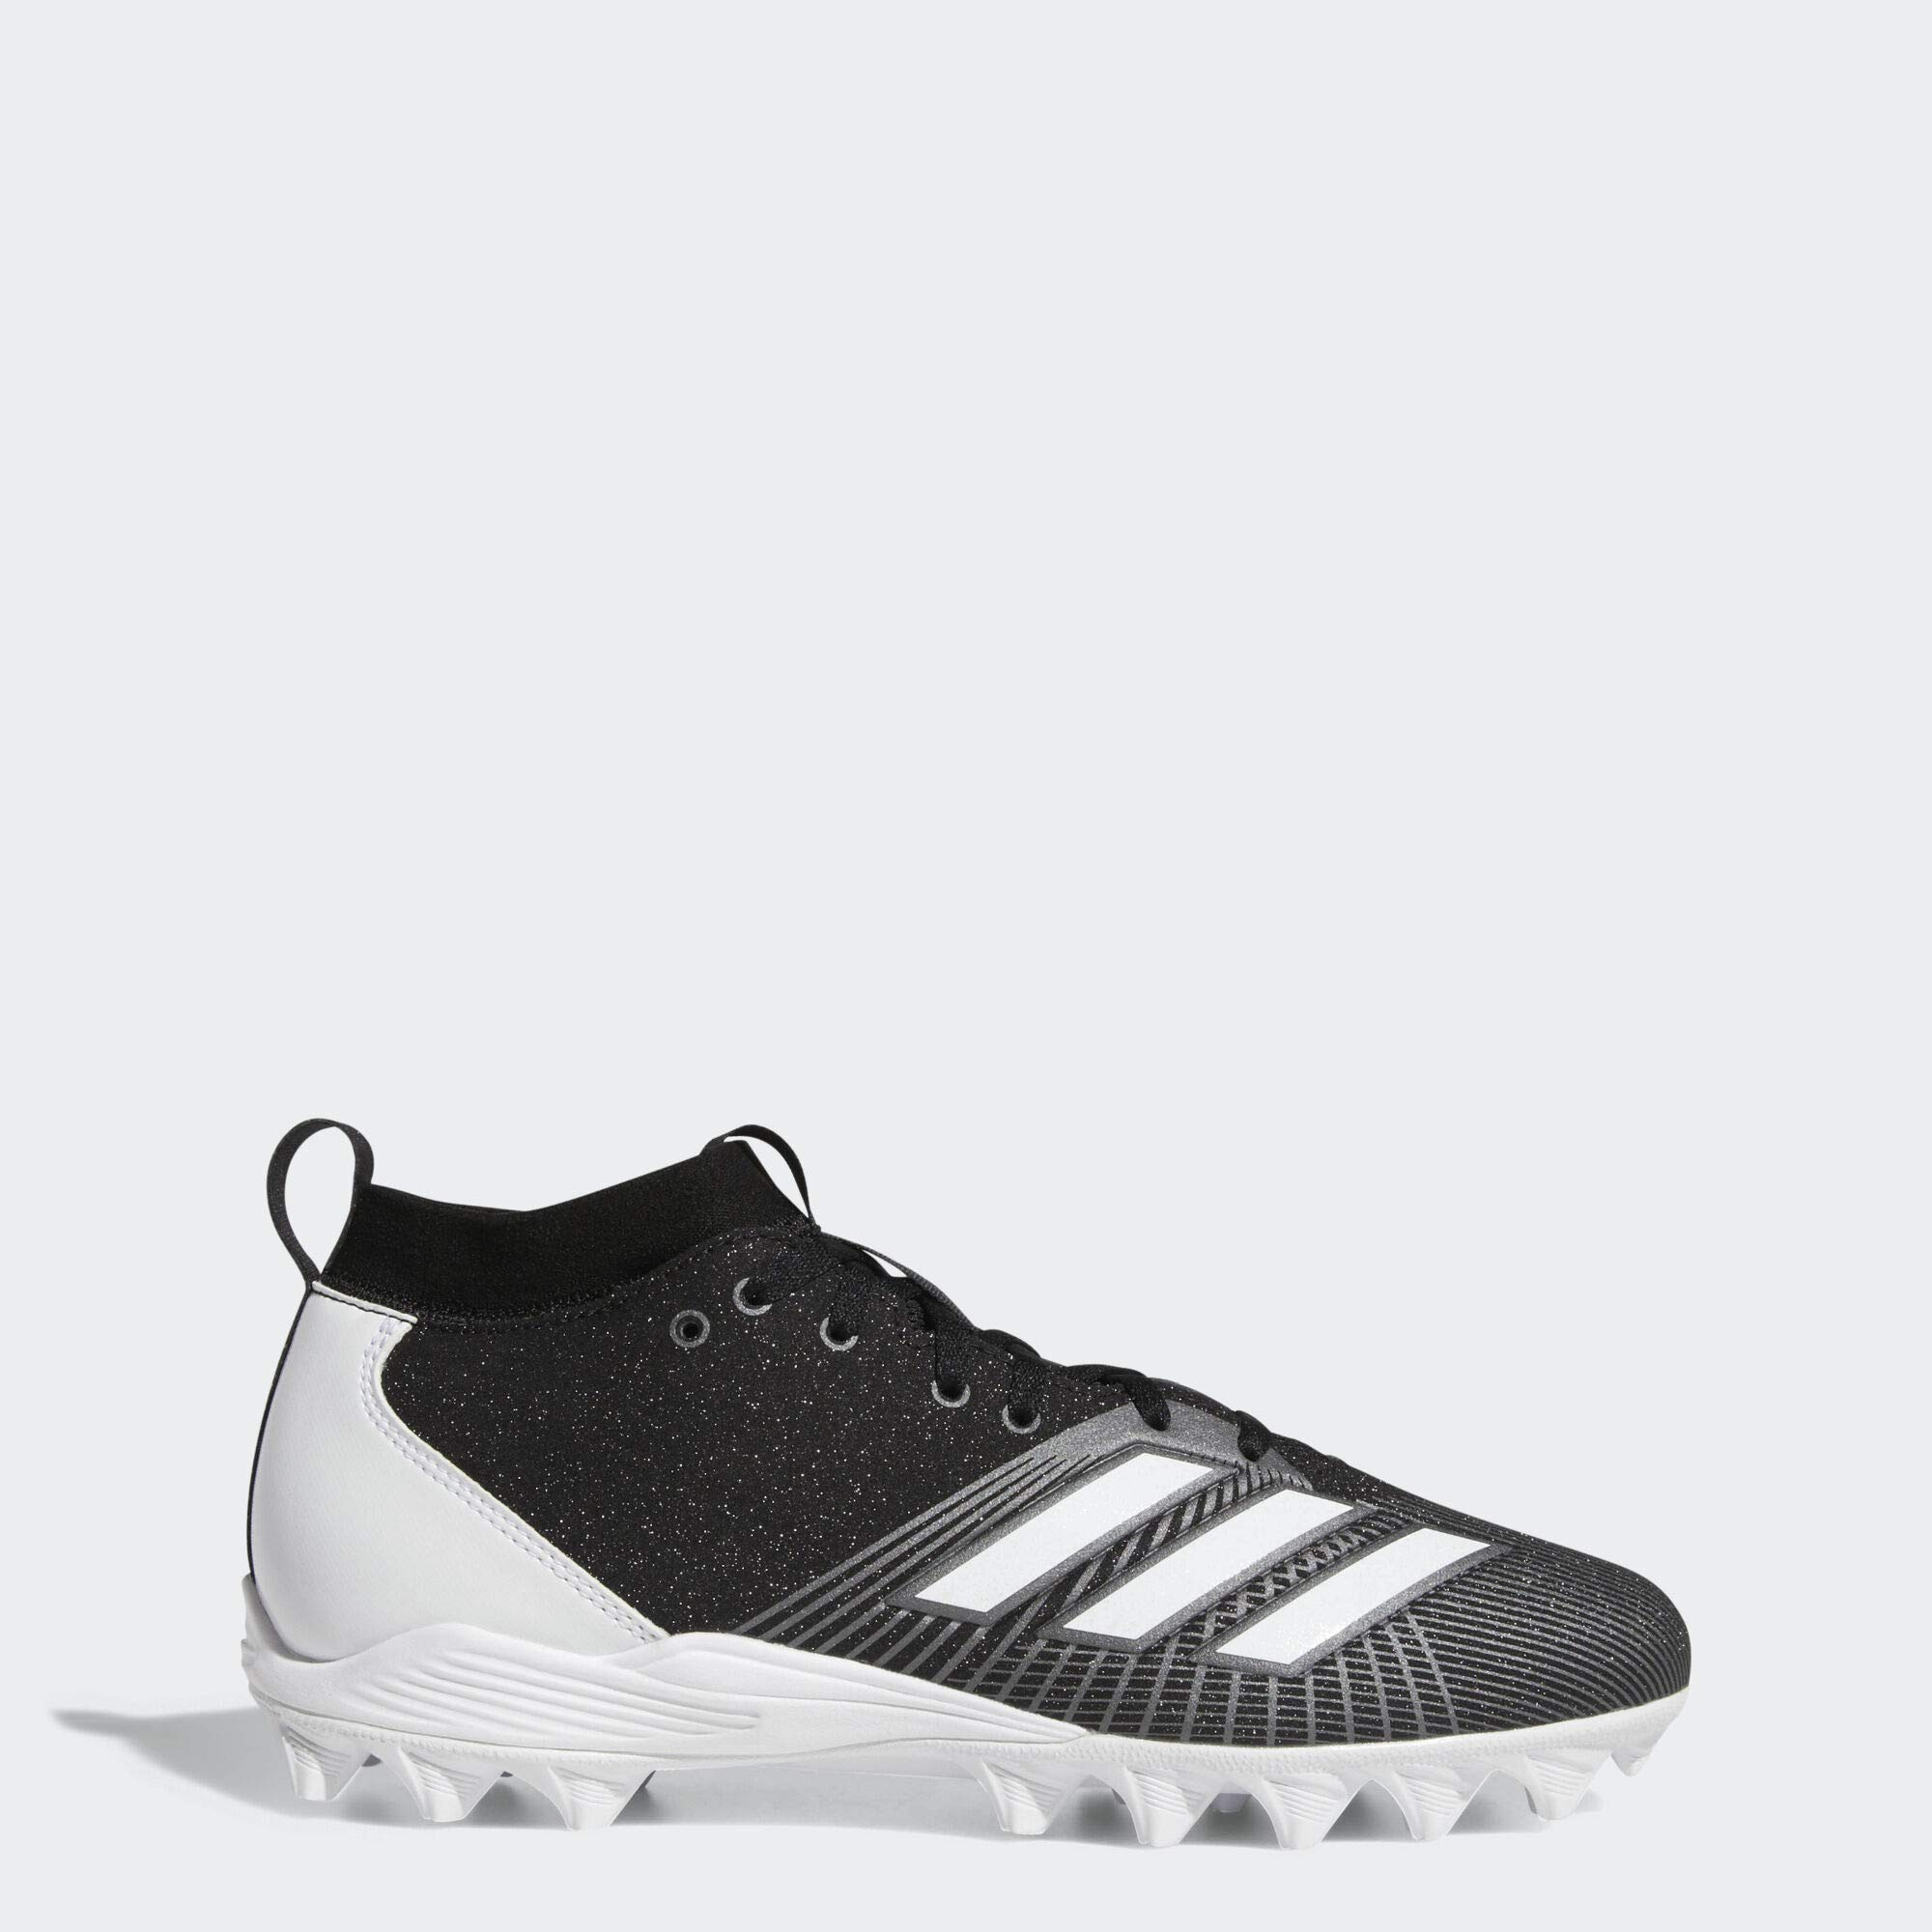 adidas Men's Adizero Spark Md Football Shoe, Black/White/Night Metallic, 9 M US by adidas